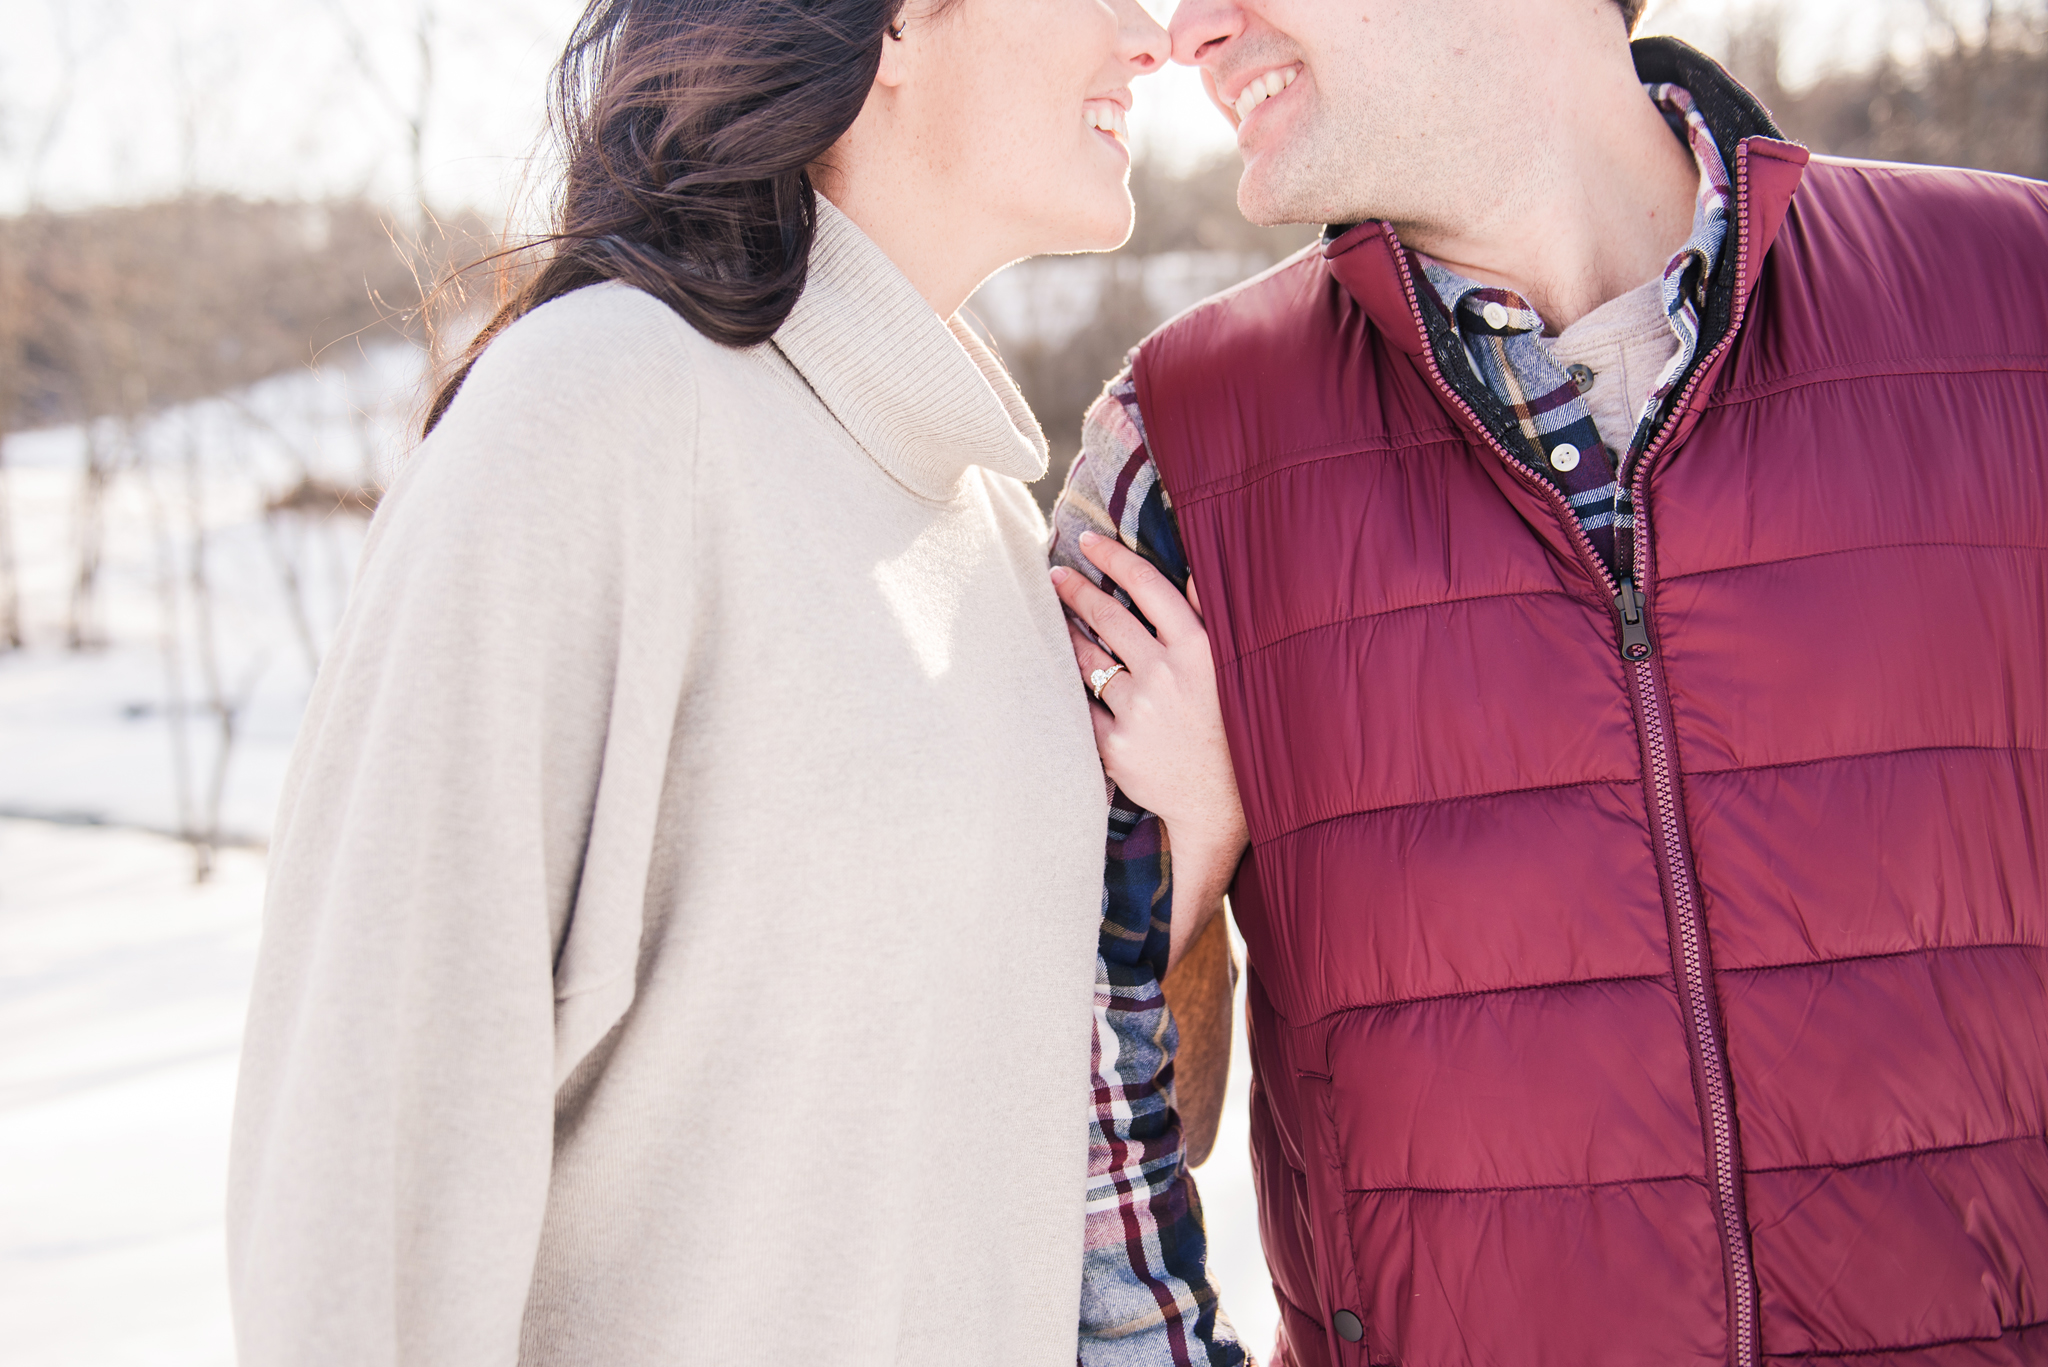 Fallbrook_Central_NY_Engagement_Session_JILL_STUDIO_Rochester_NY_Photographer_DSC_4669.jpg